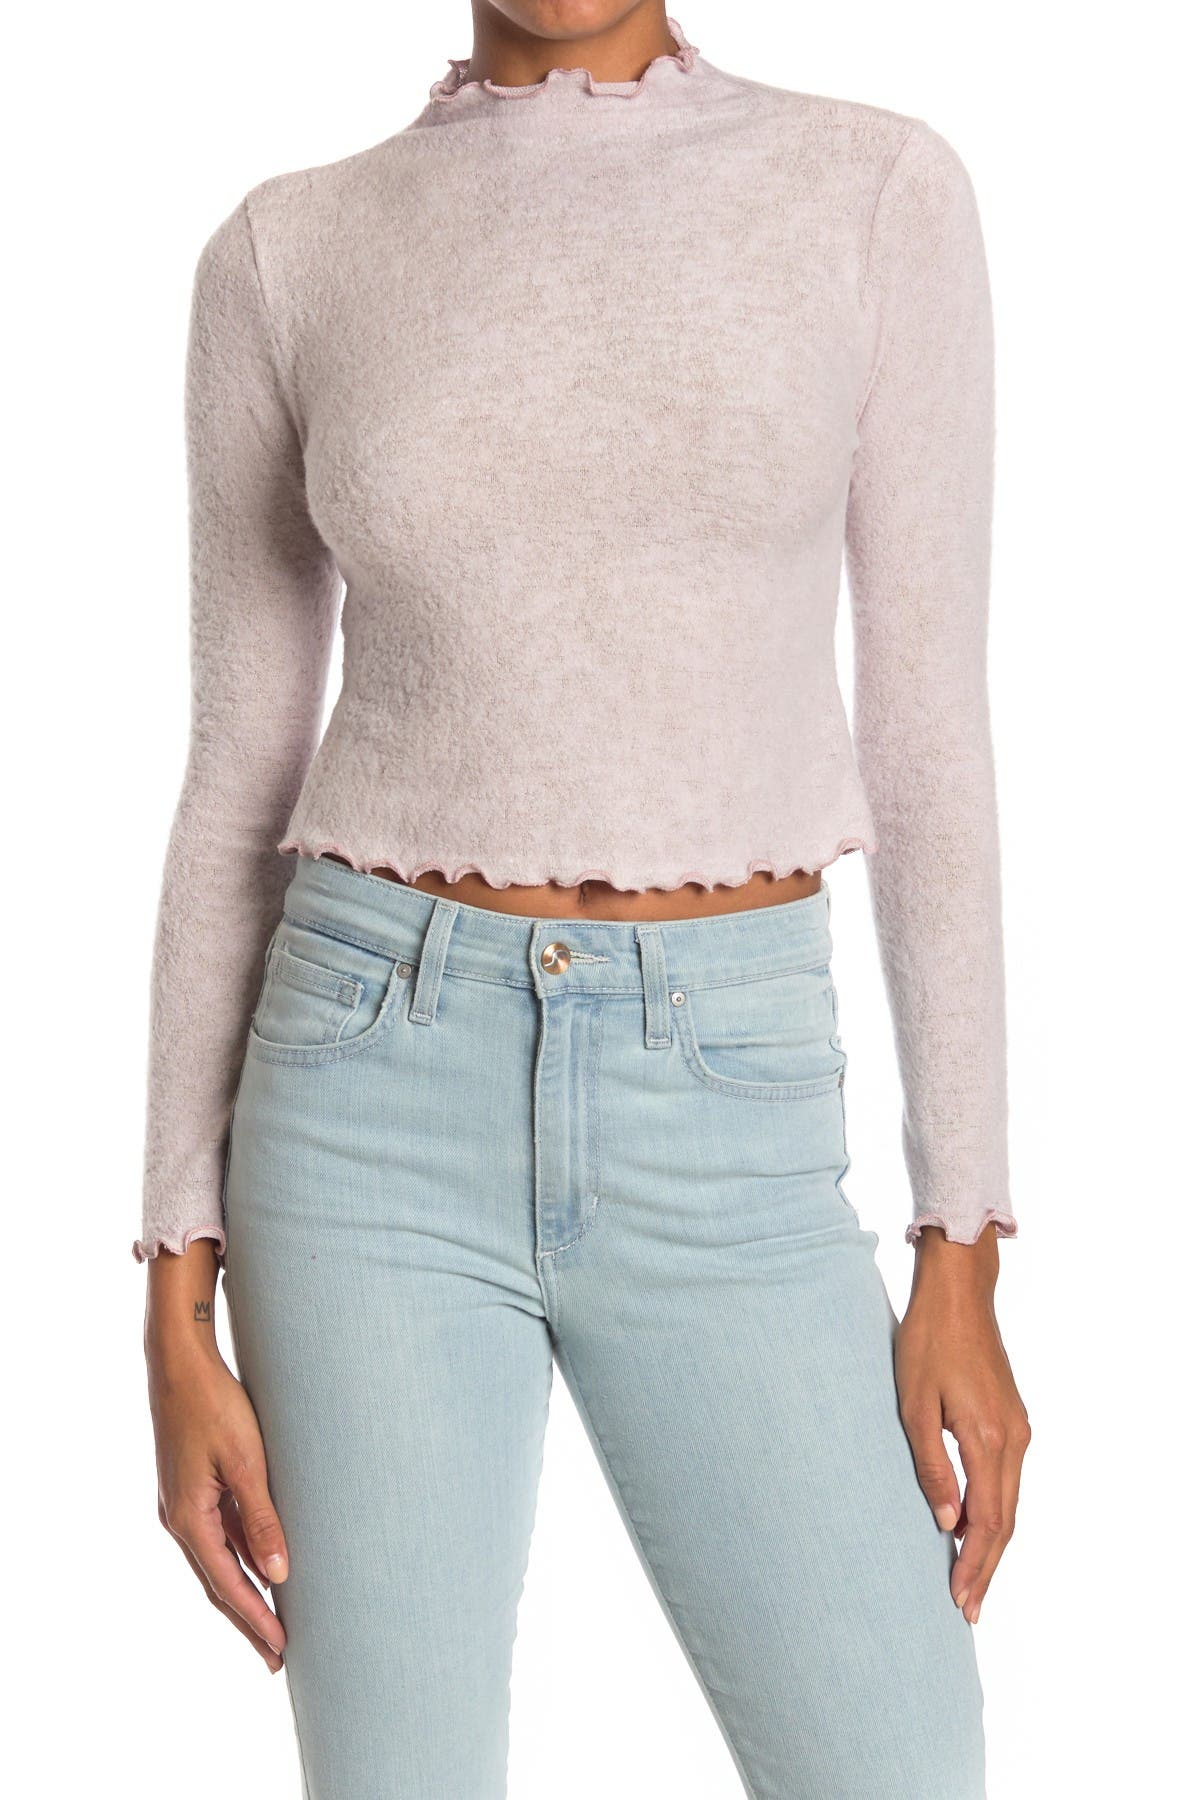 Image of Lush Long Sleeve Lettuce Trimmed Top